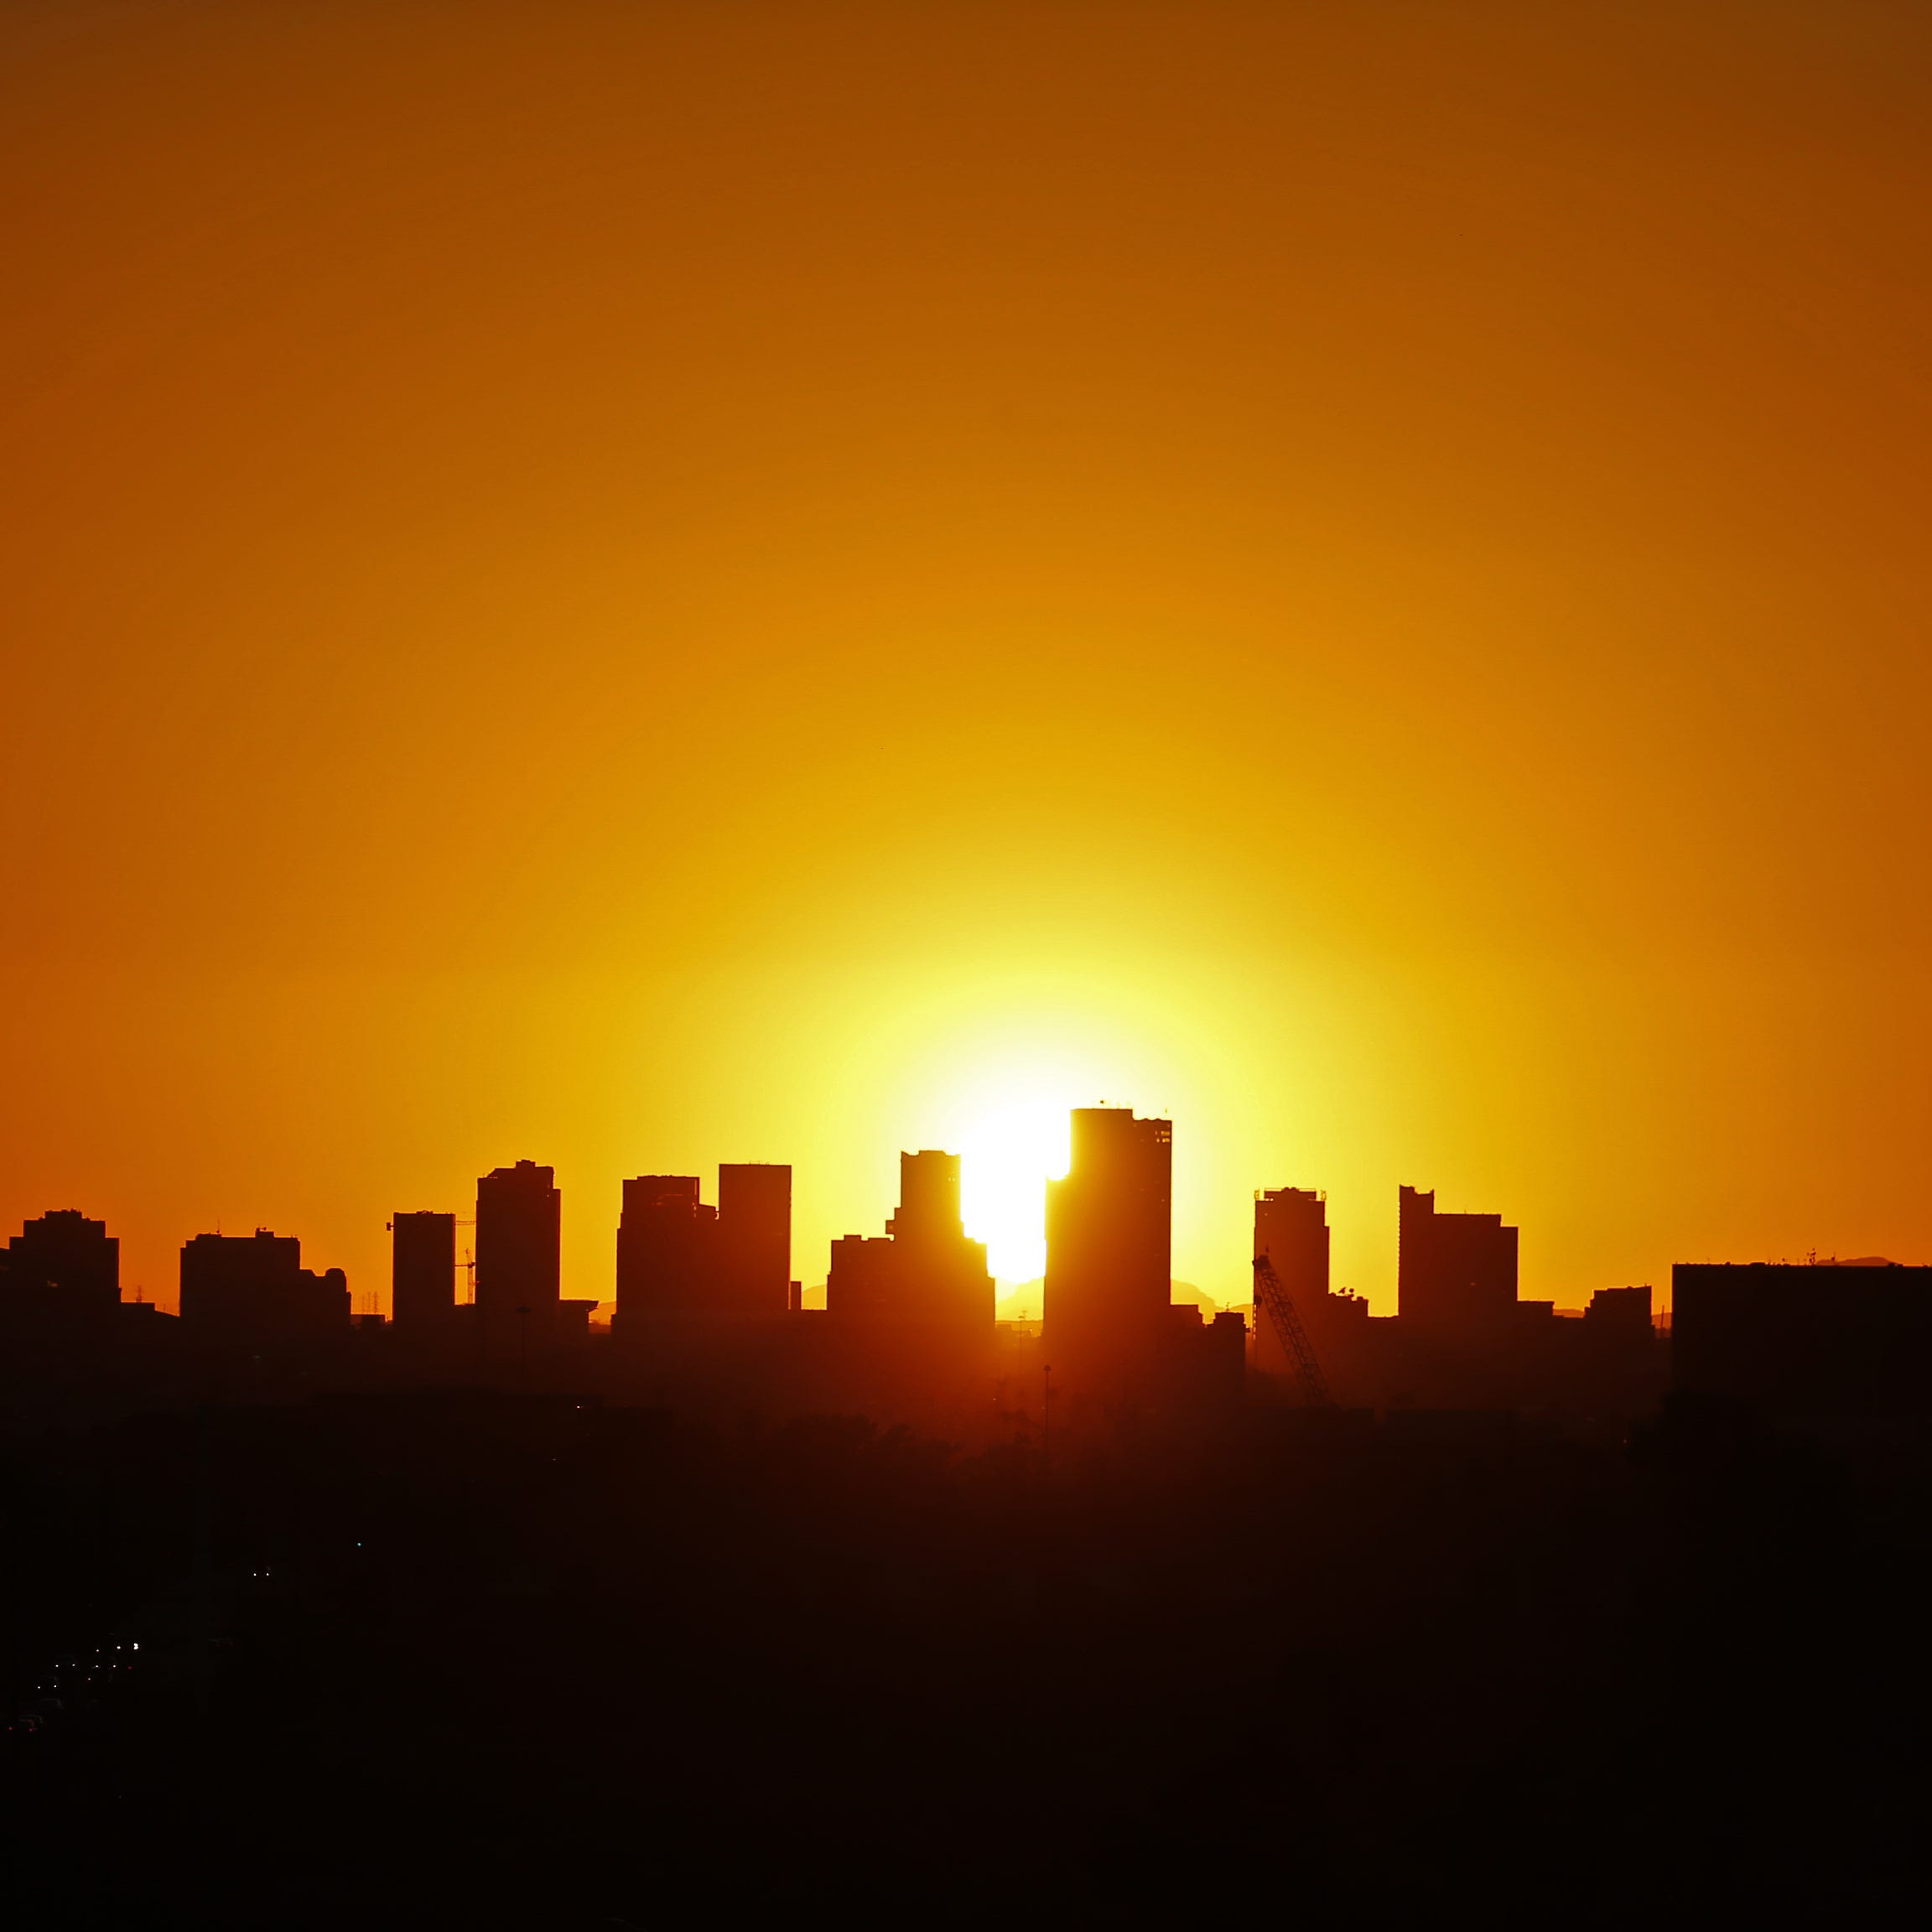 Maricopa County named fastest-growing county in the U.S. for second year in a row